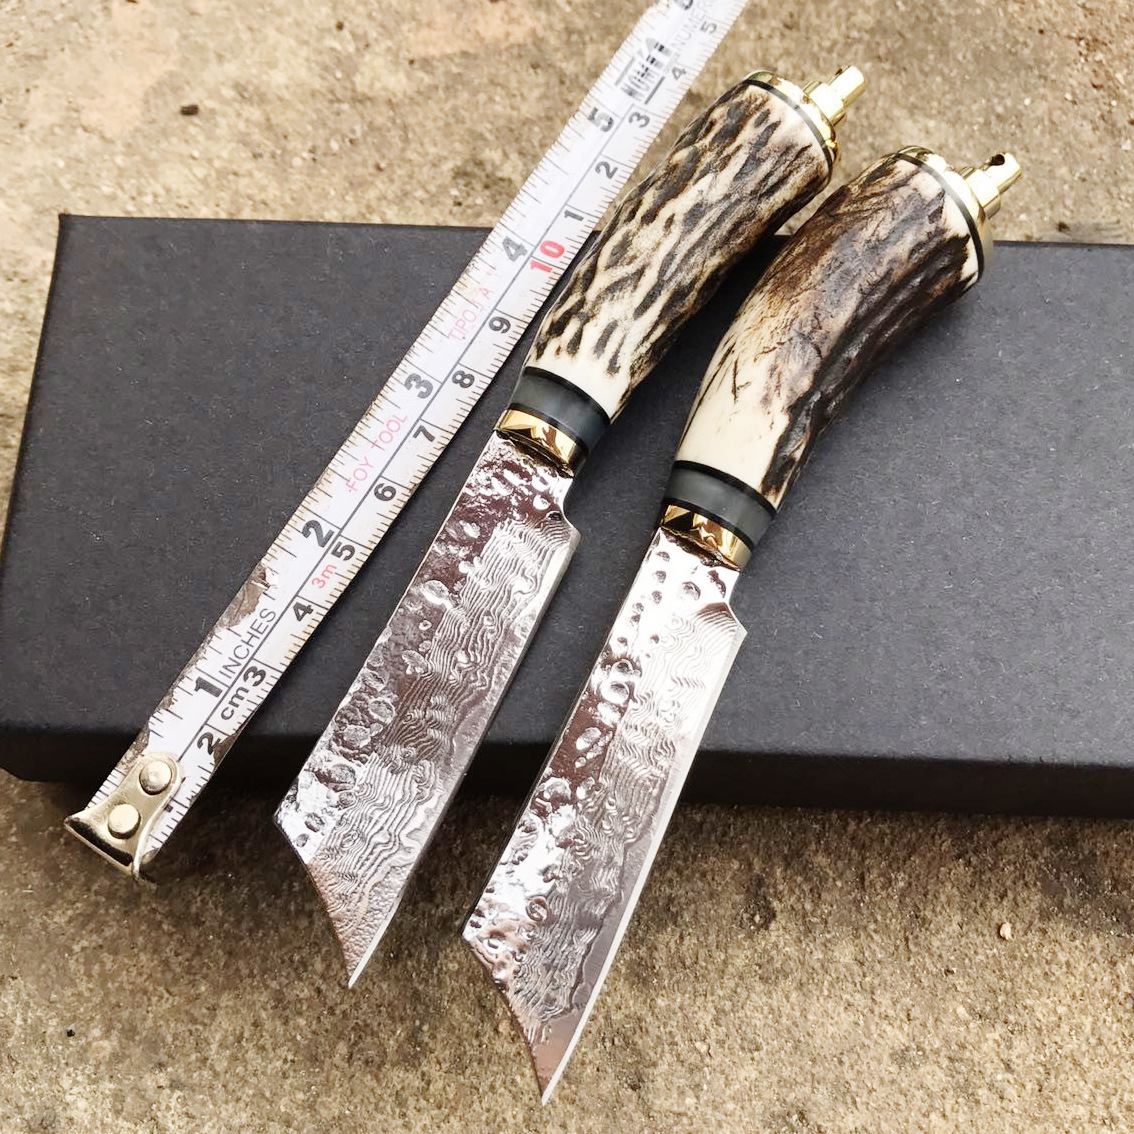 Damascus steel army Survival knife high hardness wilderness knive essential self-defense Camping Knife Hunting outdoor tools EDC stenzhorn new damascus black antelope folding knife outdoor portable field army high hardness wilderness survival small knives